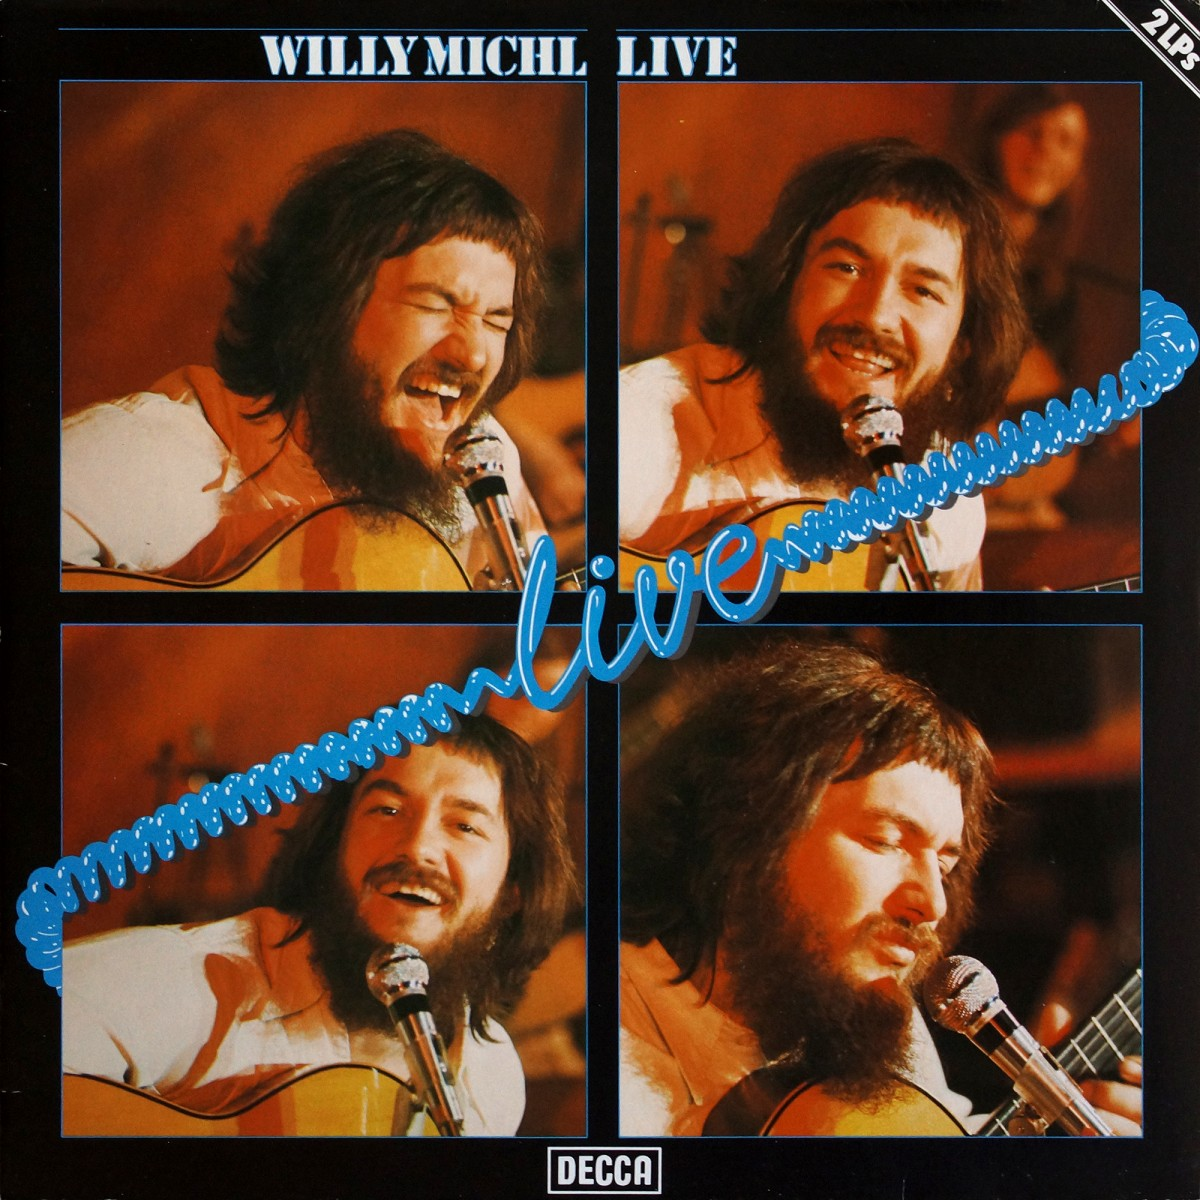 Michl, Willy: Live (1977)